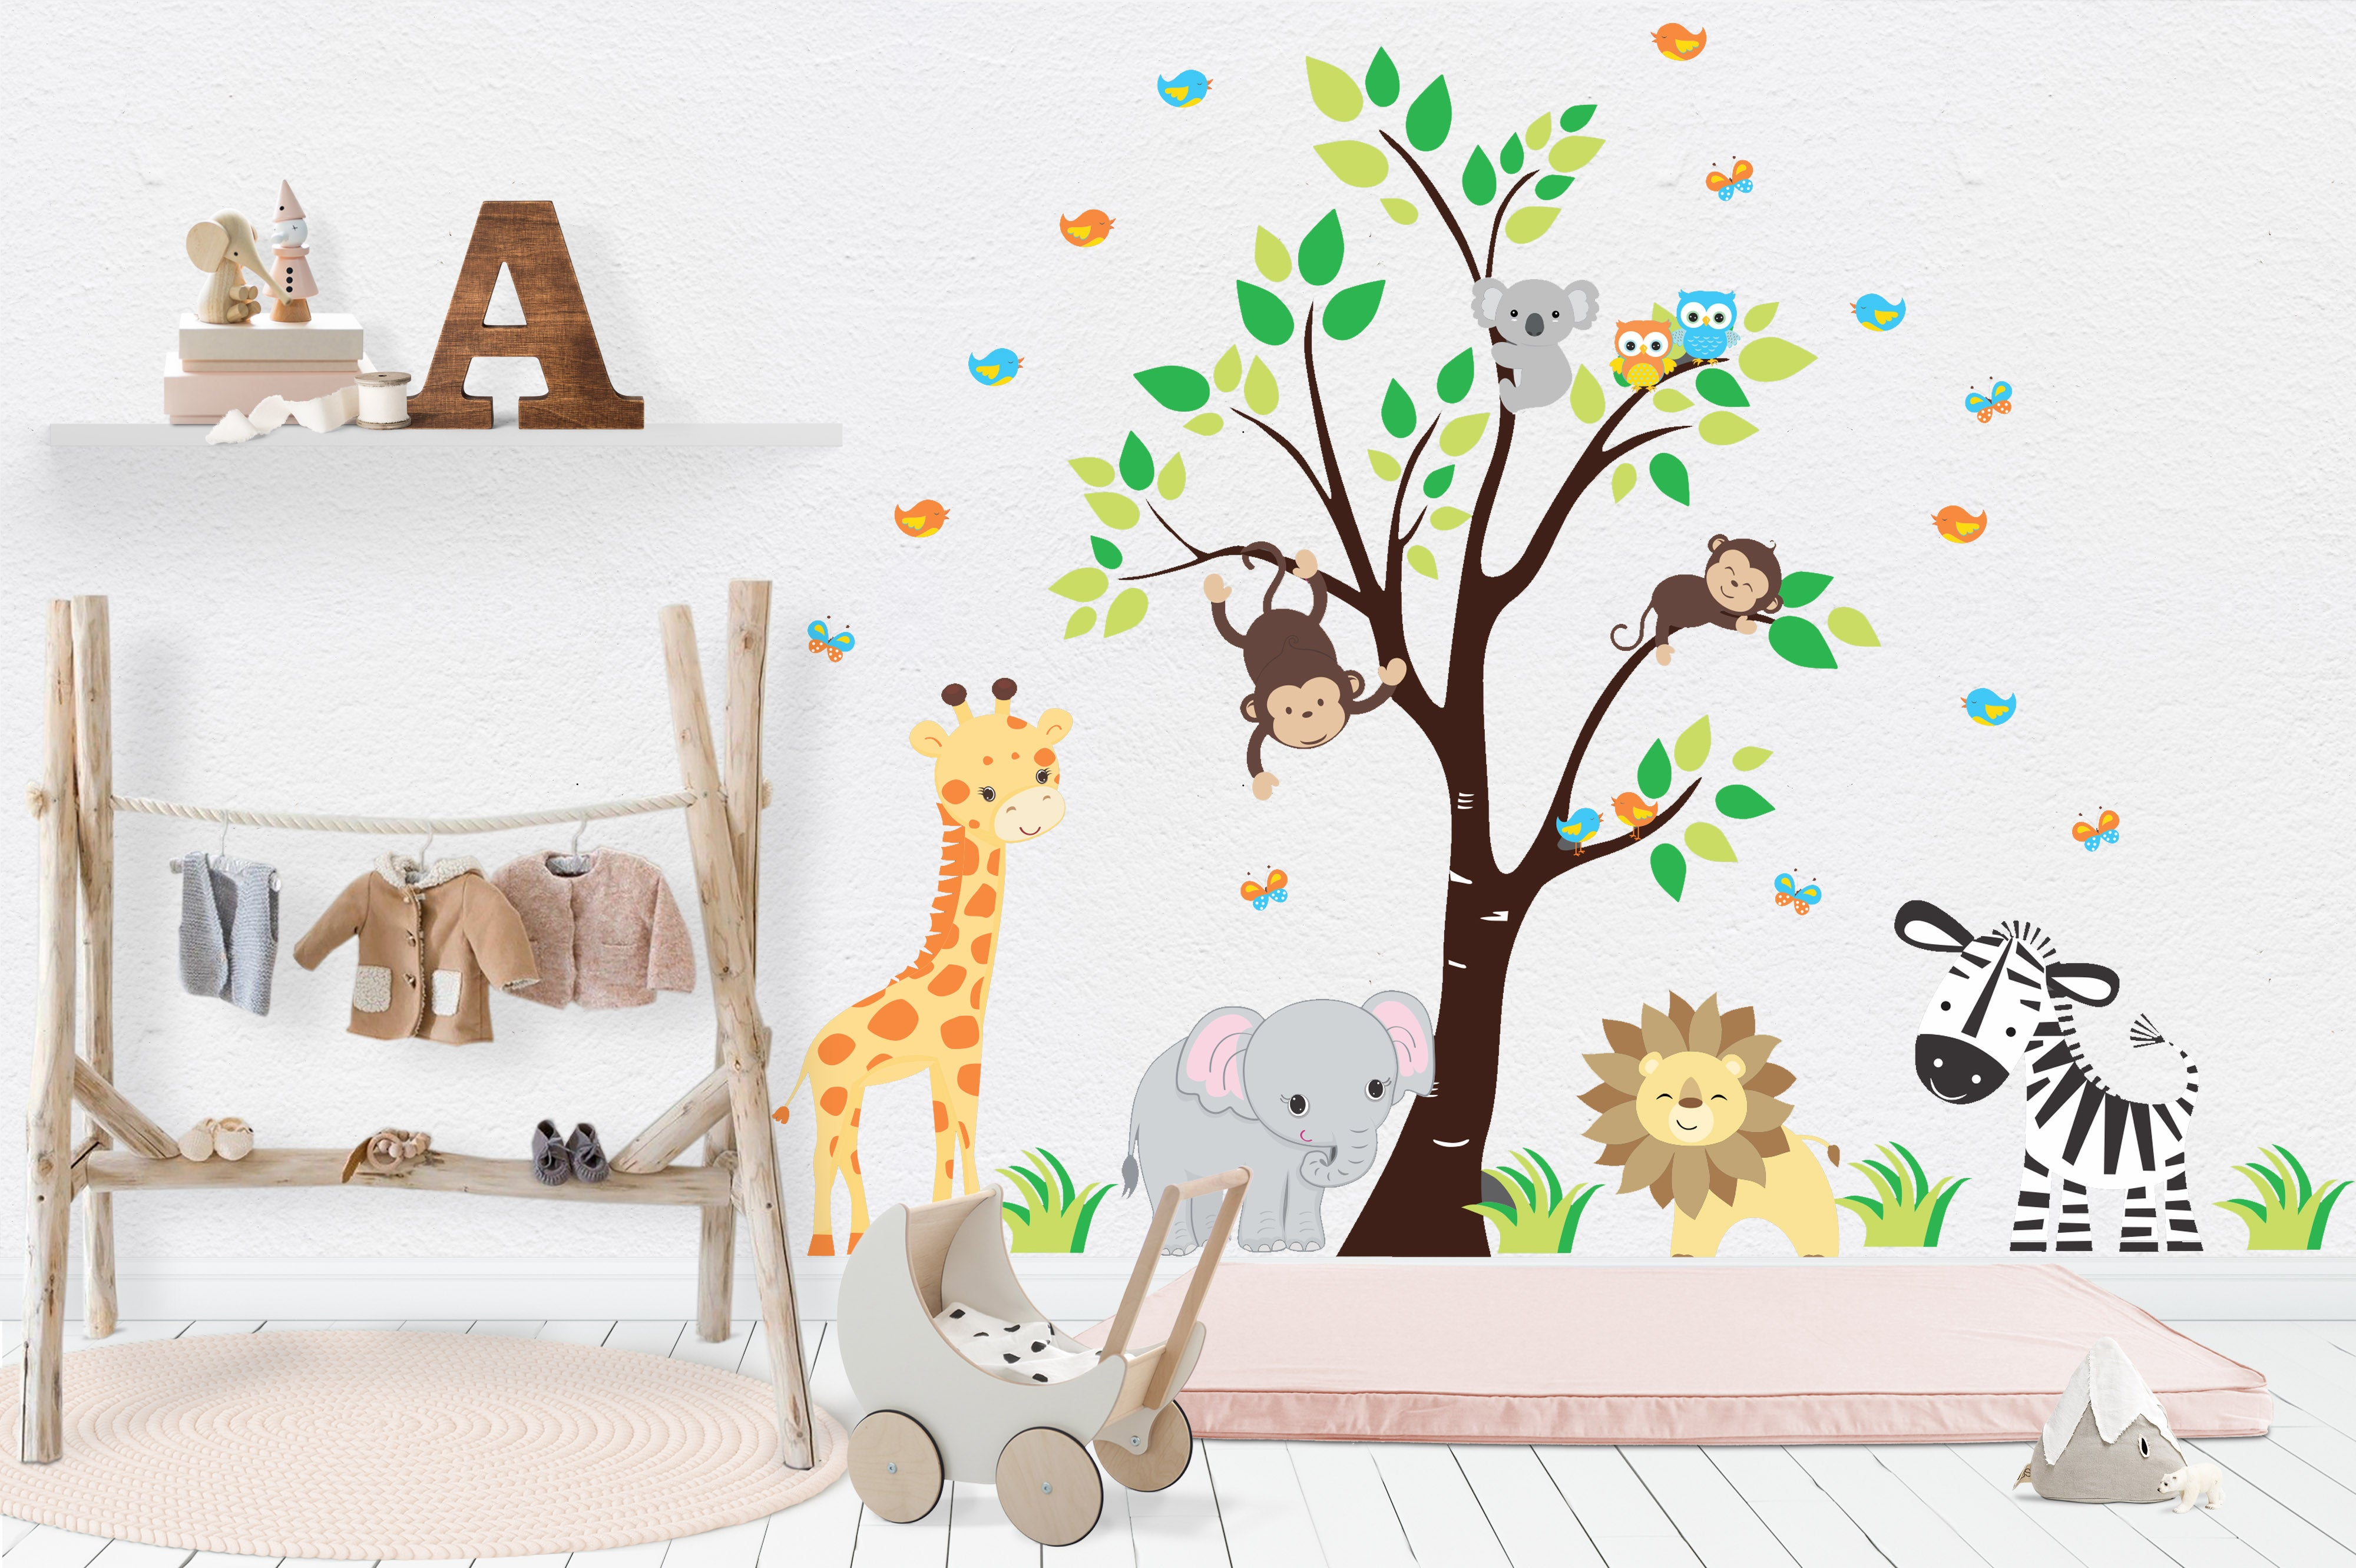 Nursery Wall Decals   Safari Nursery Stickers   Baby Room Decals   Giraffe    Elephant